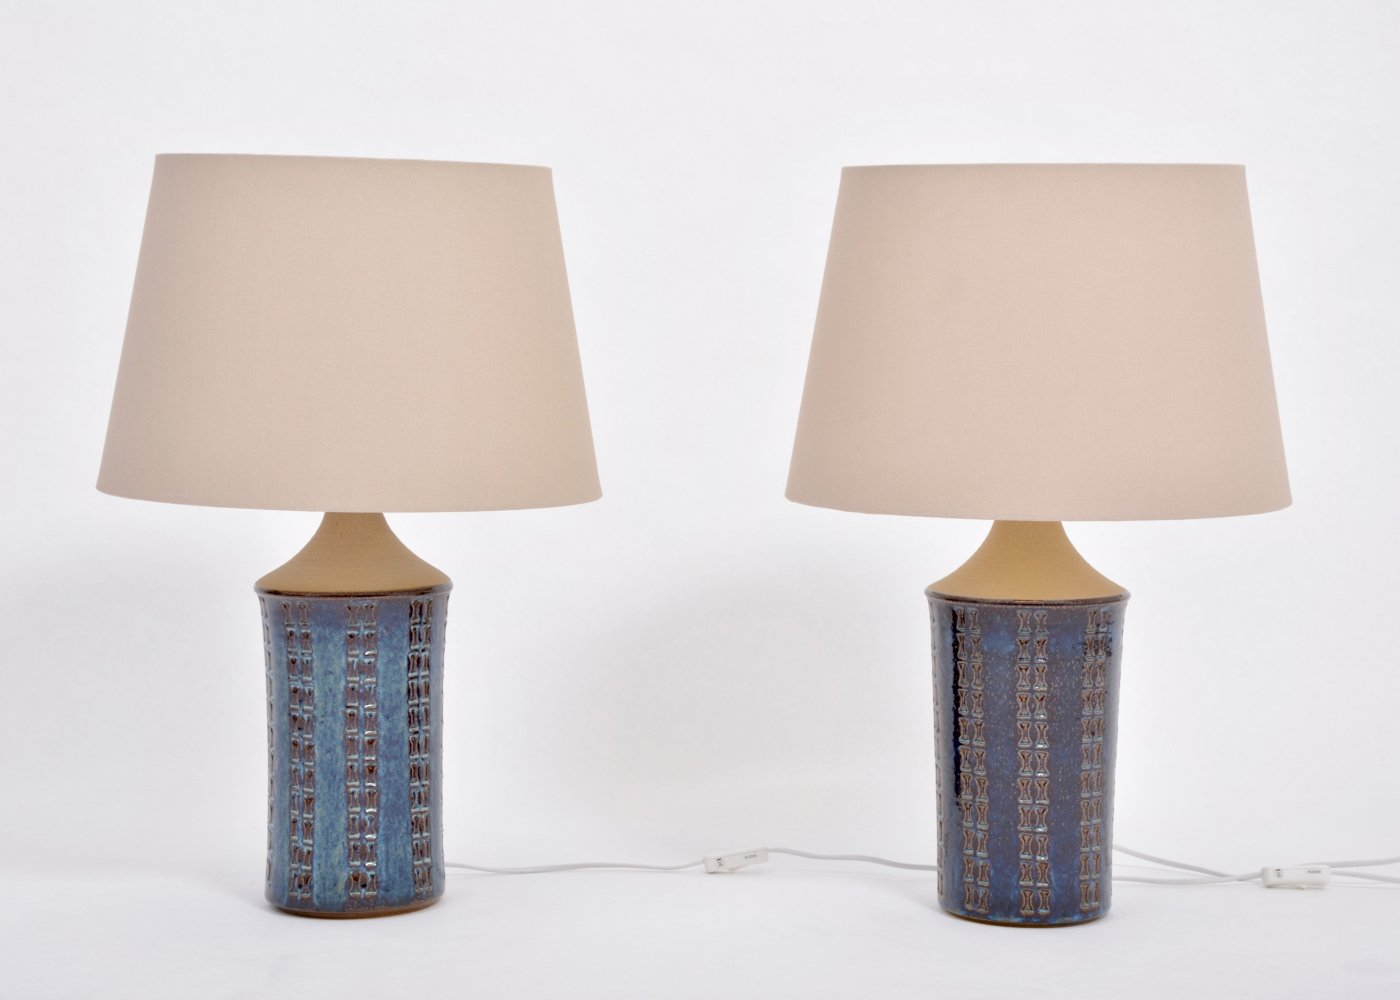 Pair of tall blue Mid-Century-Modern table lamps by Maria Philippi for Soholm